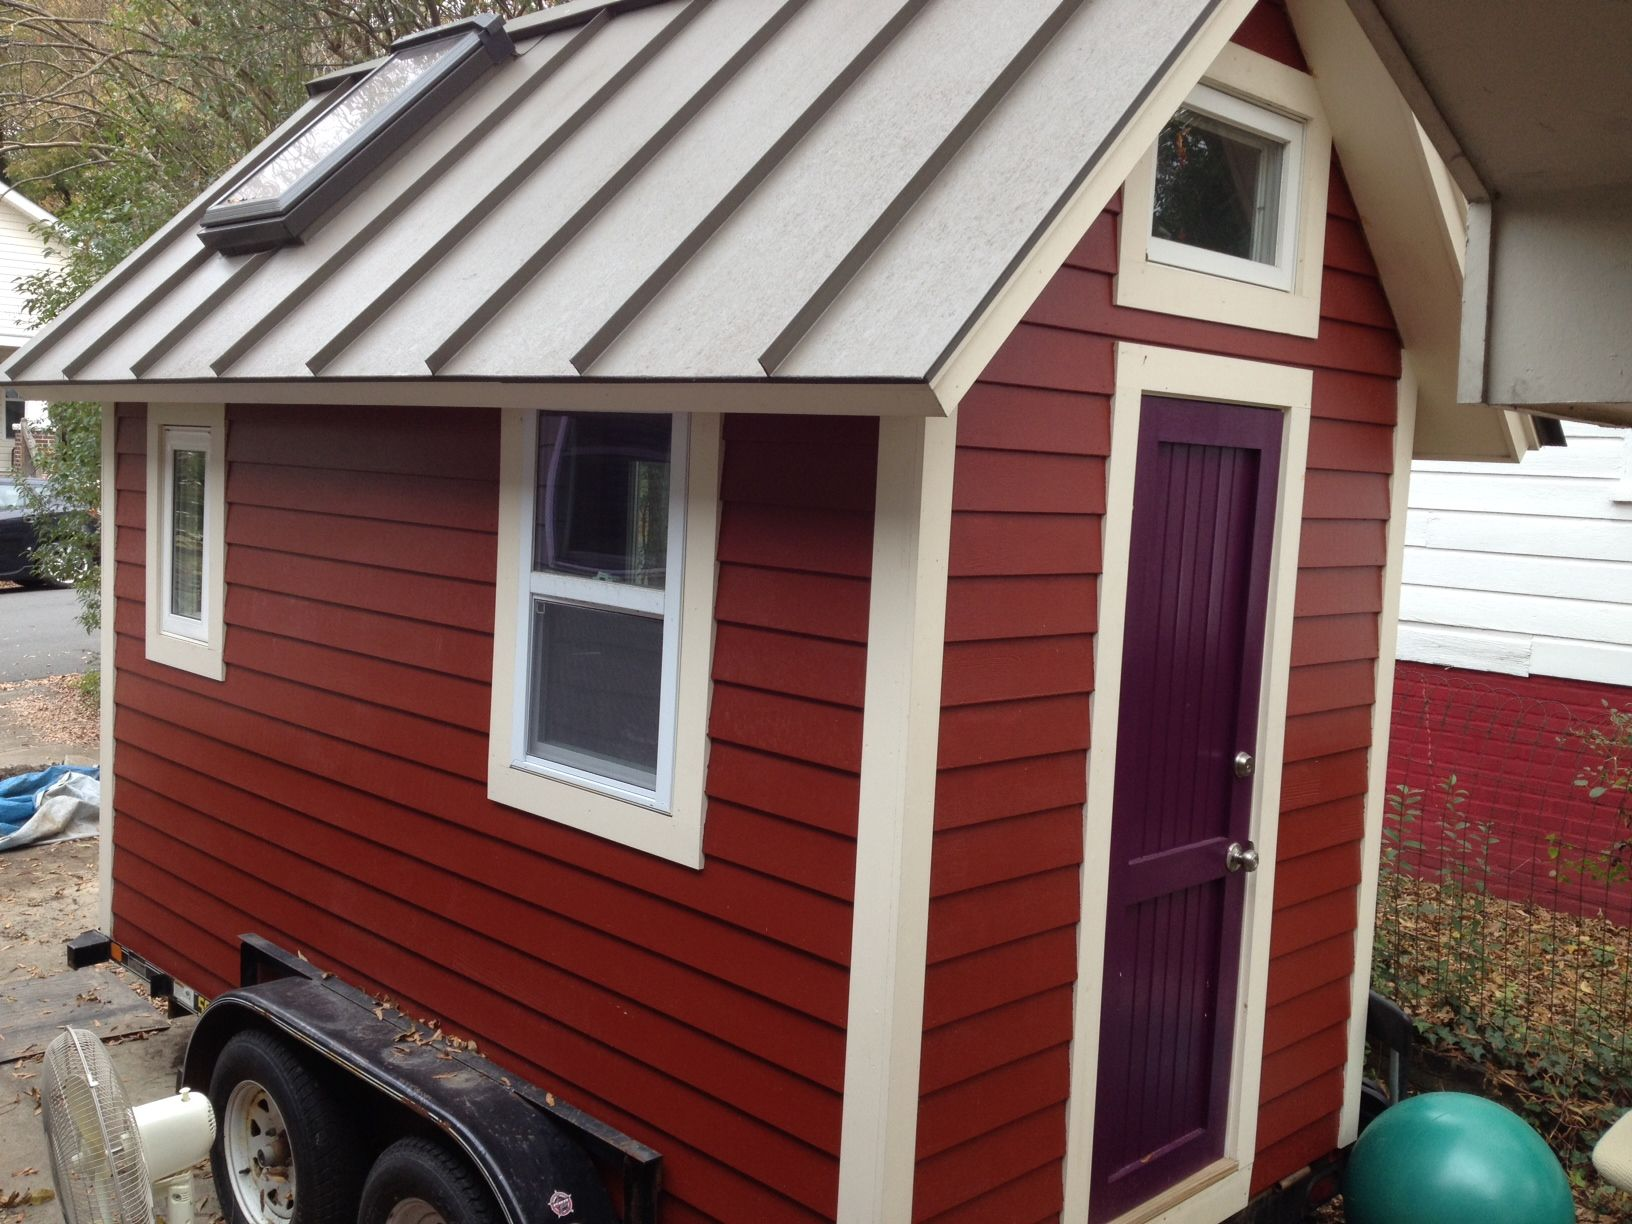 Tiny houses on trailers for sale - 6 X 12 Tiny House Or Office On A Trailer For